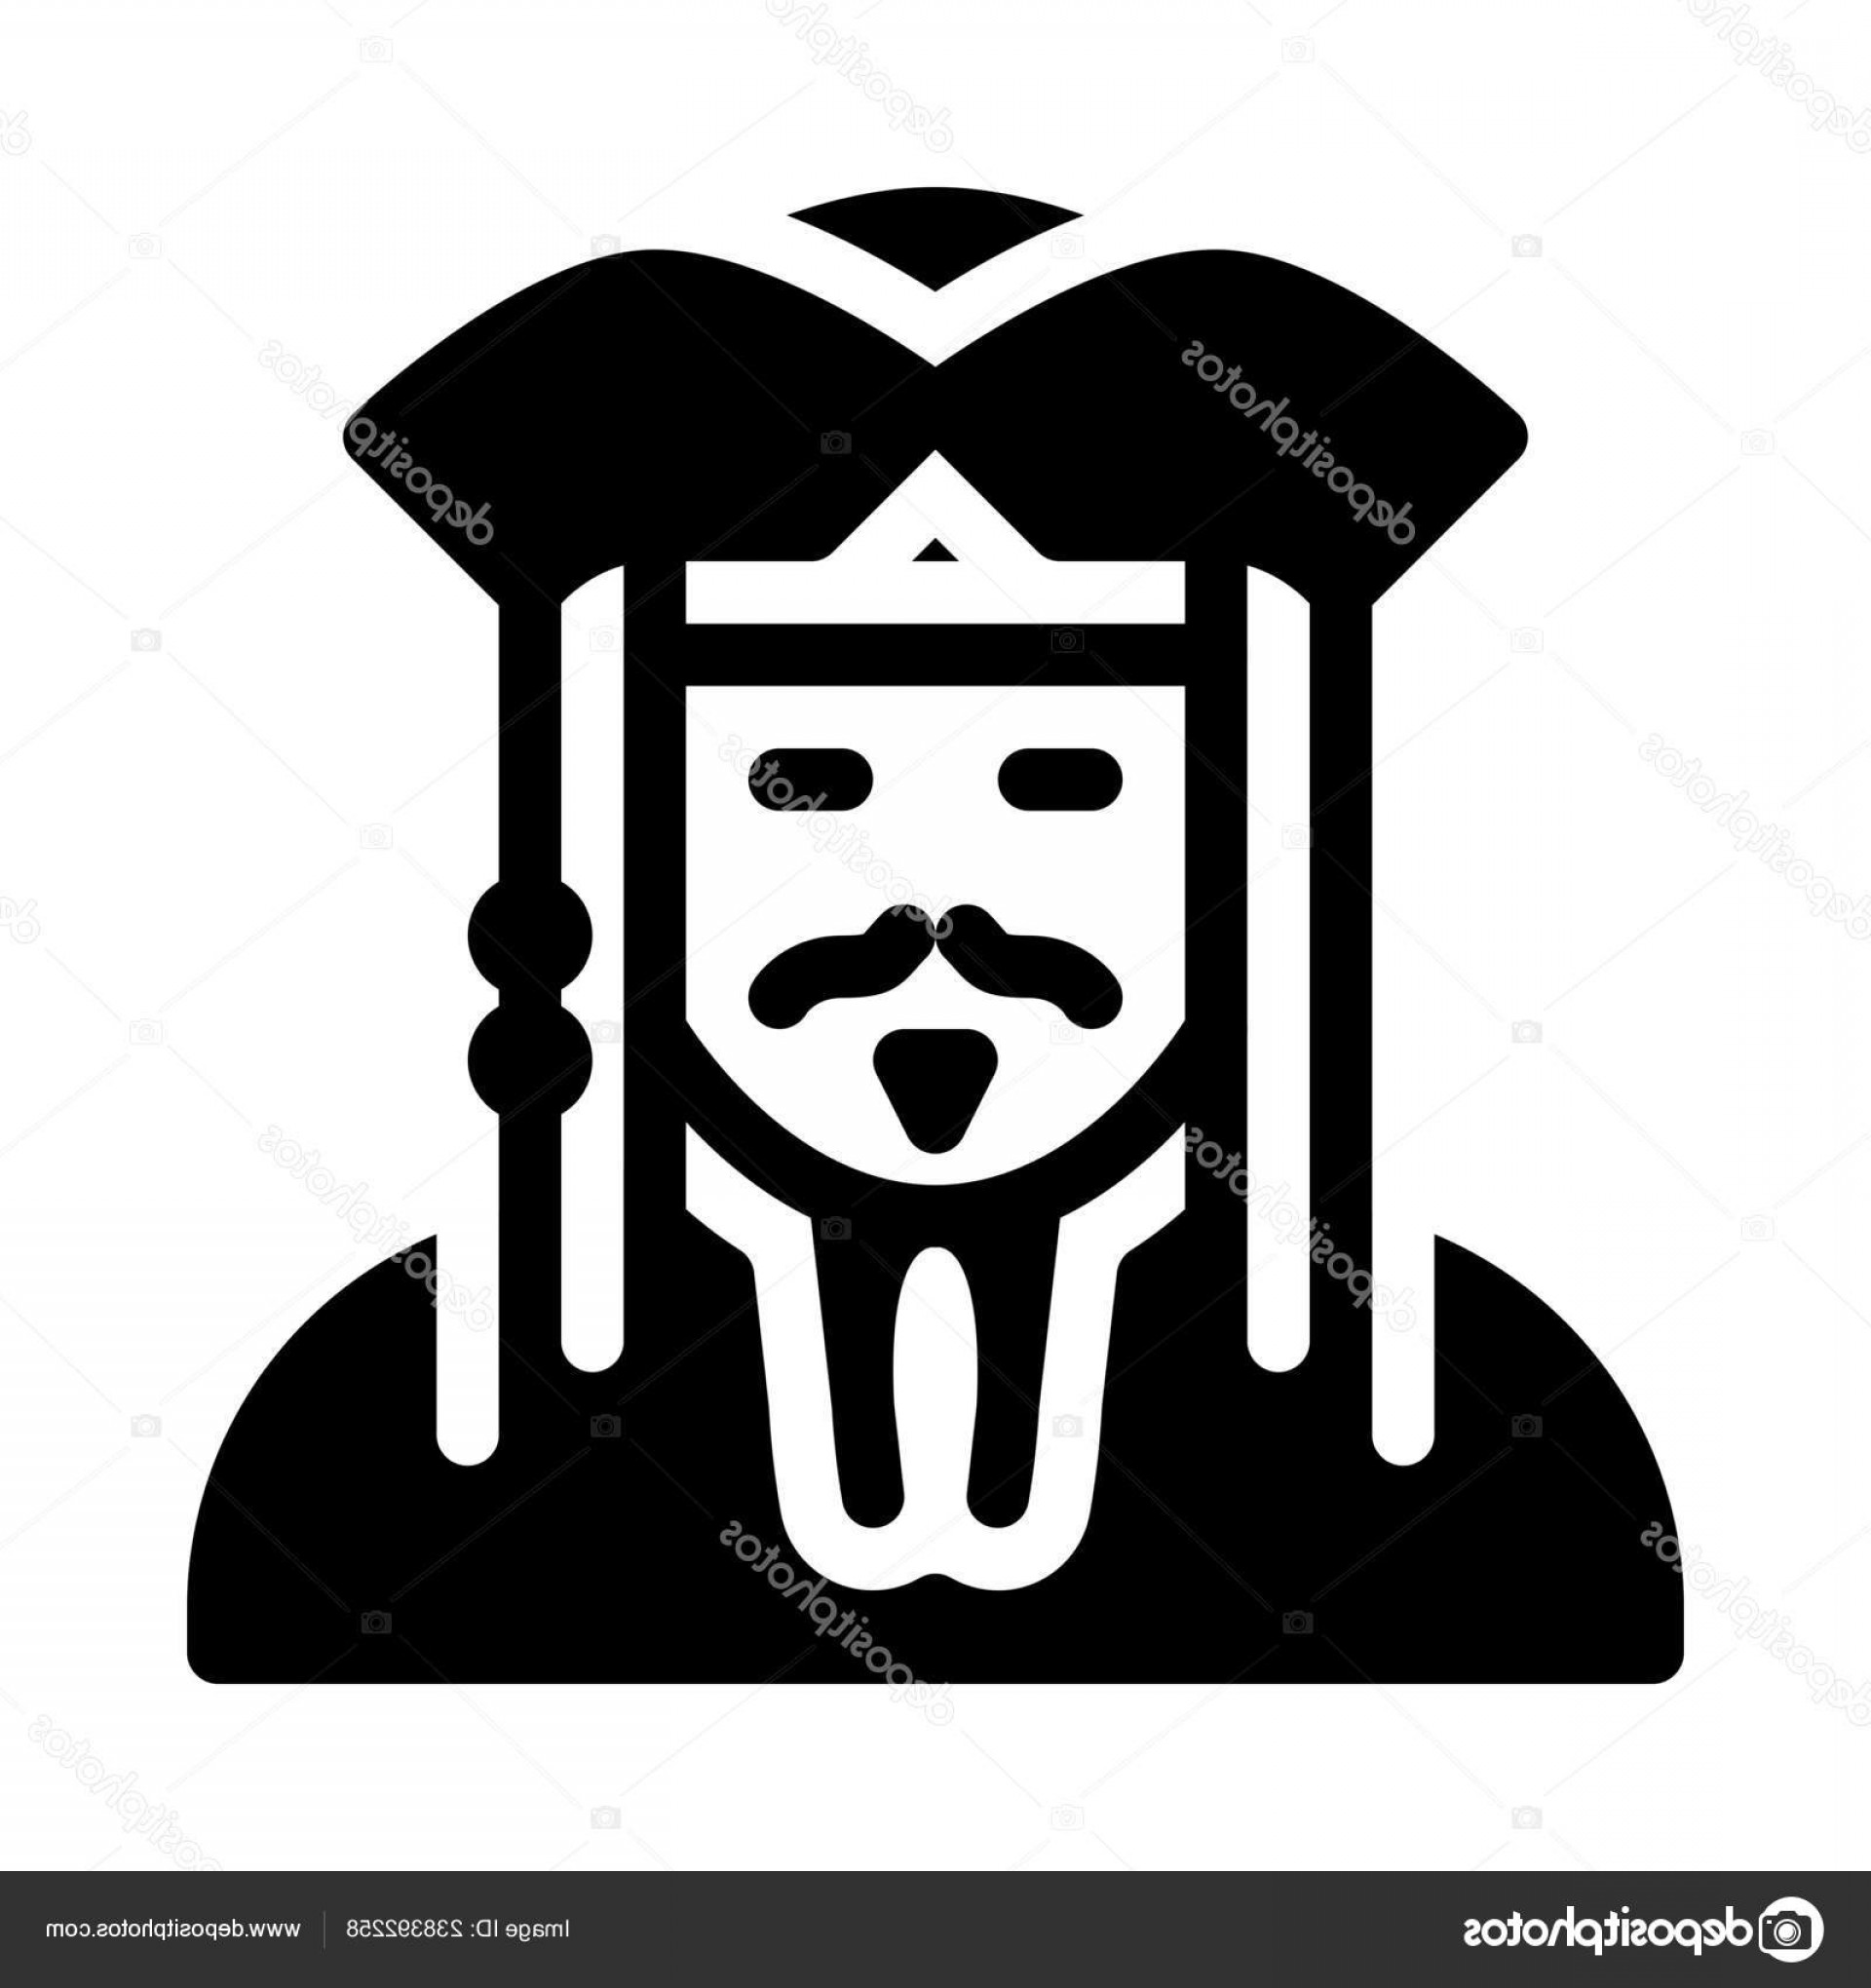 Jack Sparrow Vector Logo: Stock Illustration Pirate Jack Sparrow Simple Black